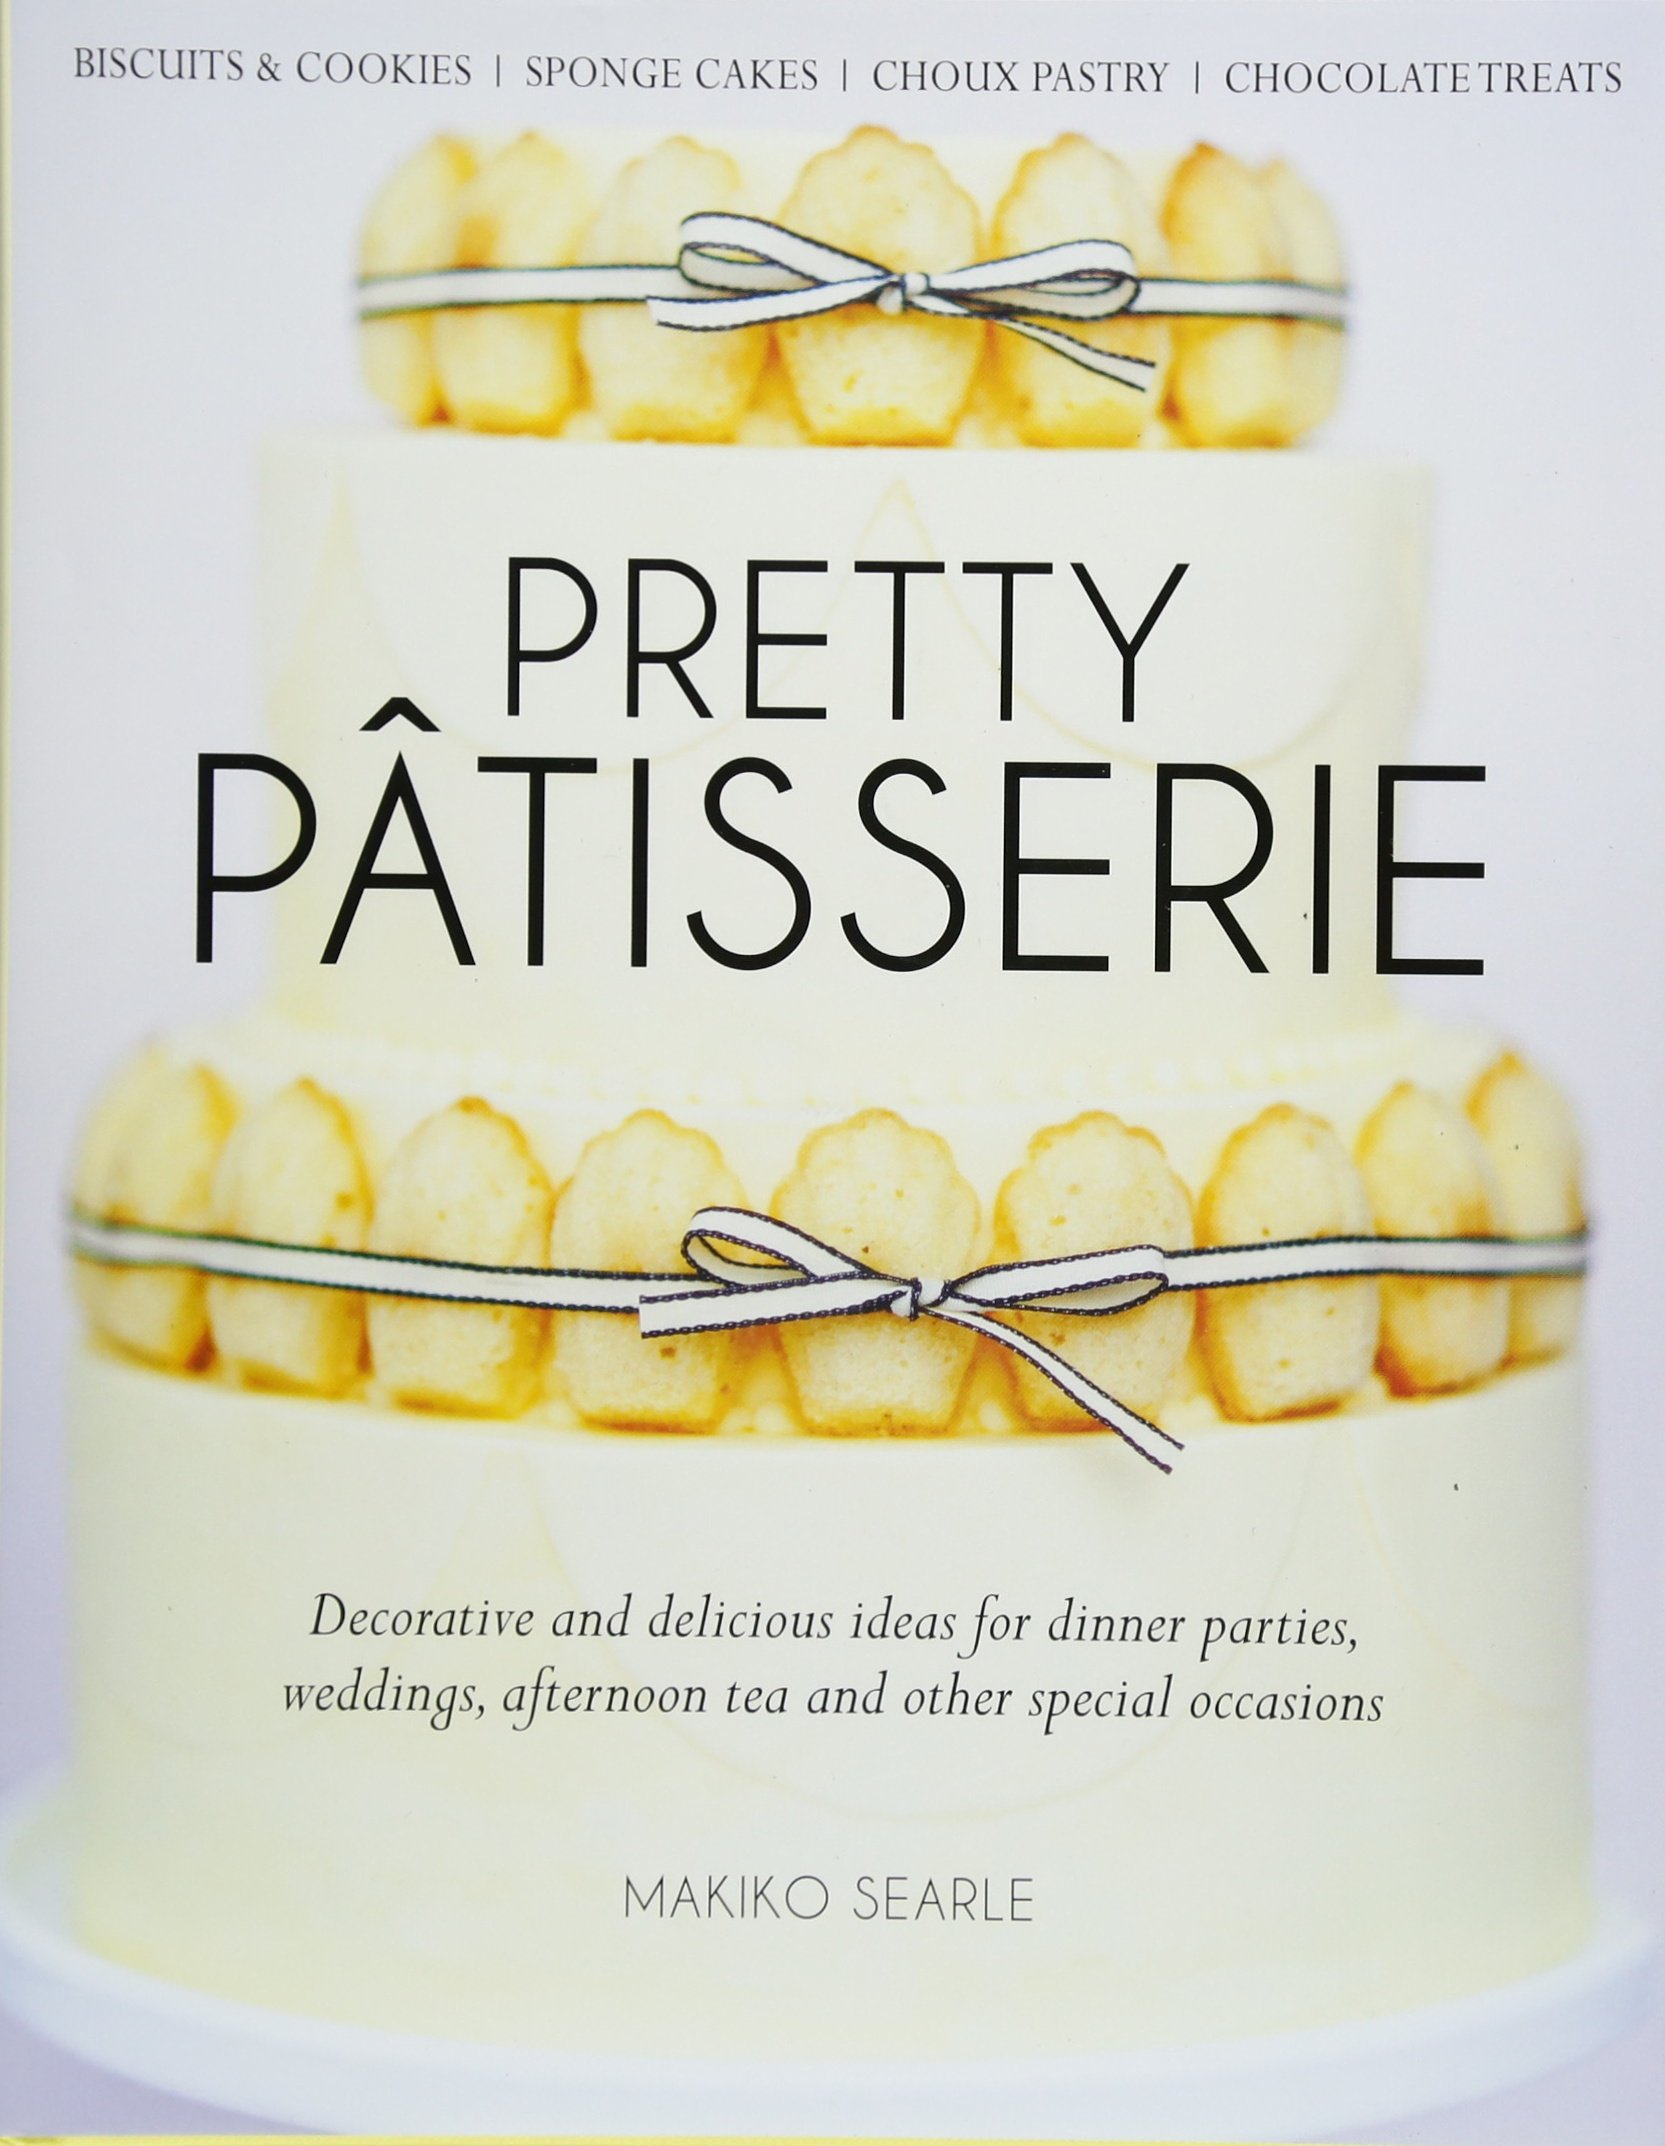 Pretty Patisserie Decorative And Delicious Ideas For Dinner Parties